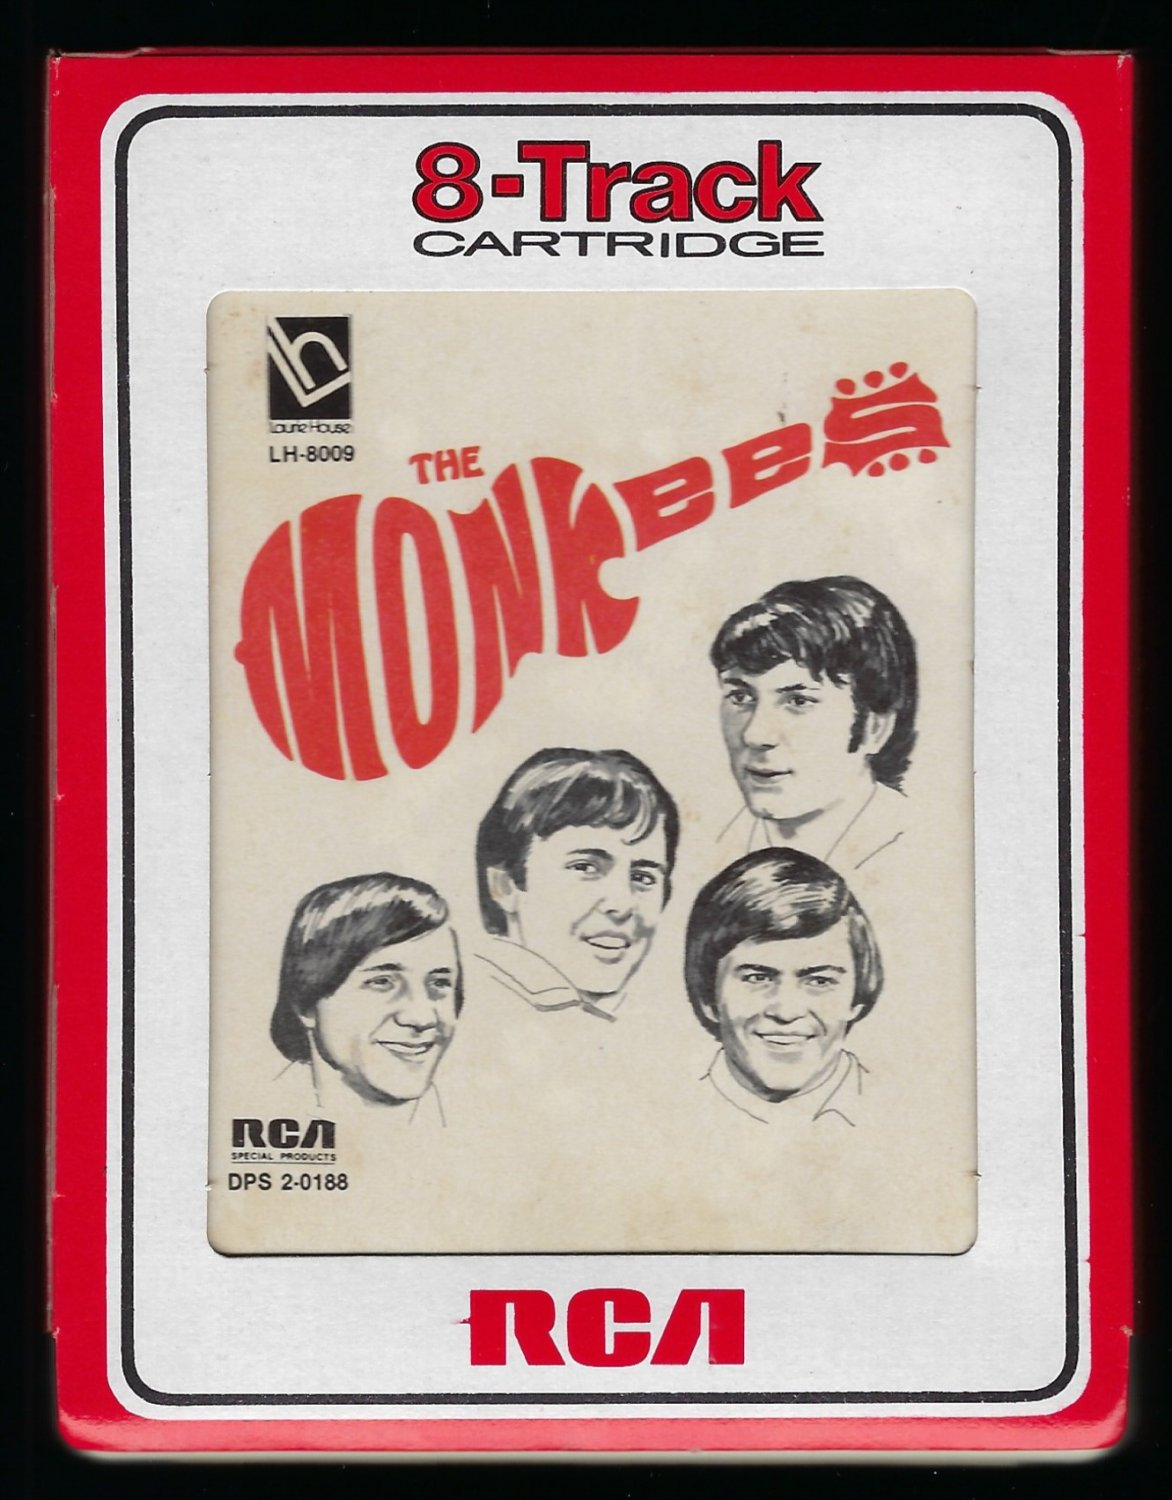 The Monkees - The Monkees 1976 RCA SPECIAL PRODUCTS LAURIE T10 8-TRACK TAPE